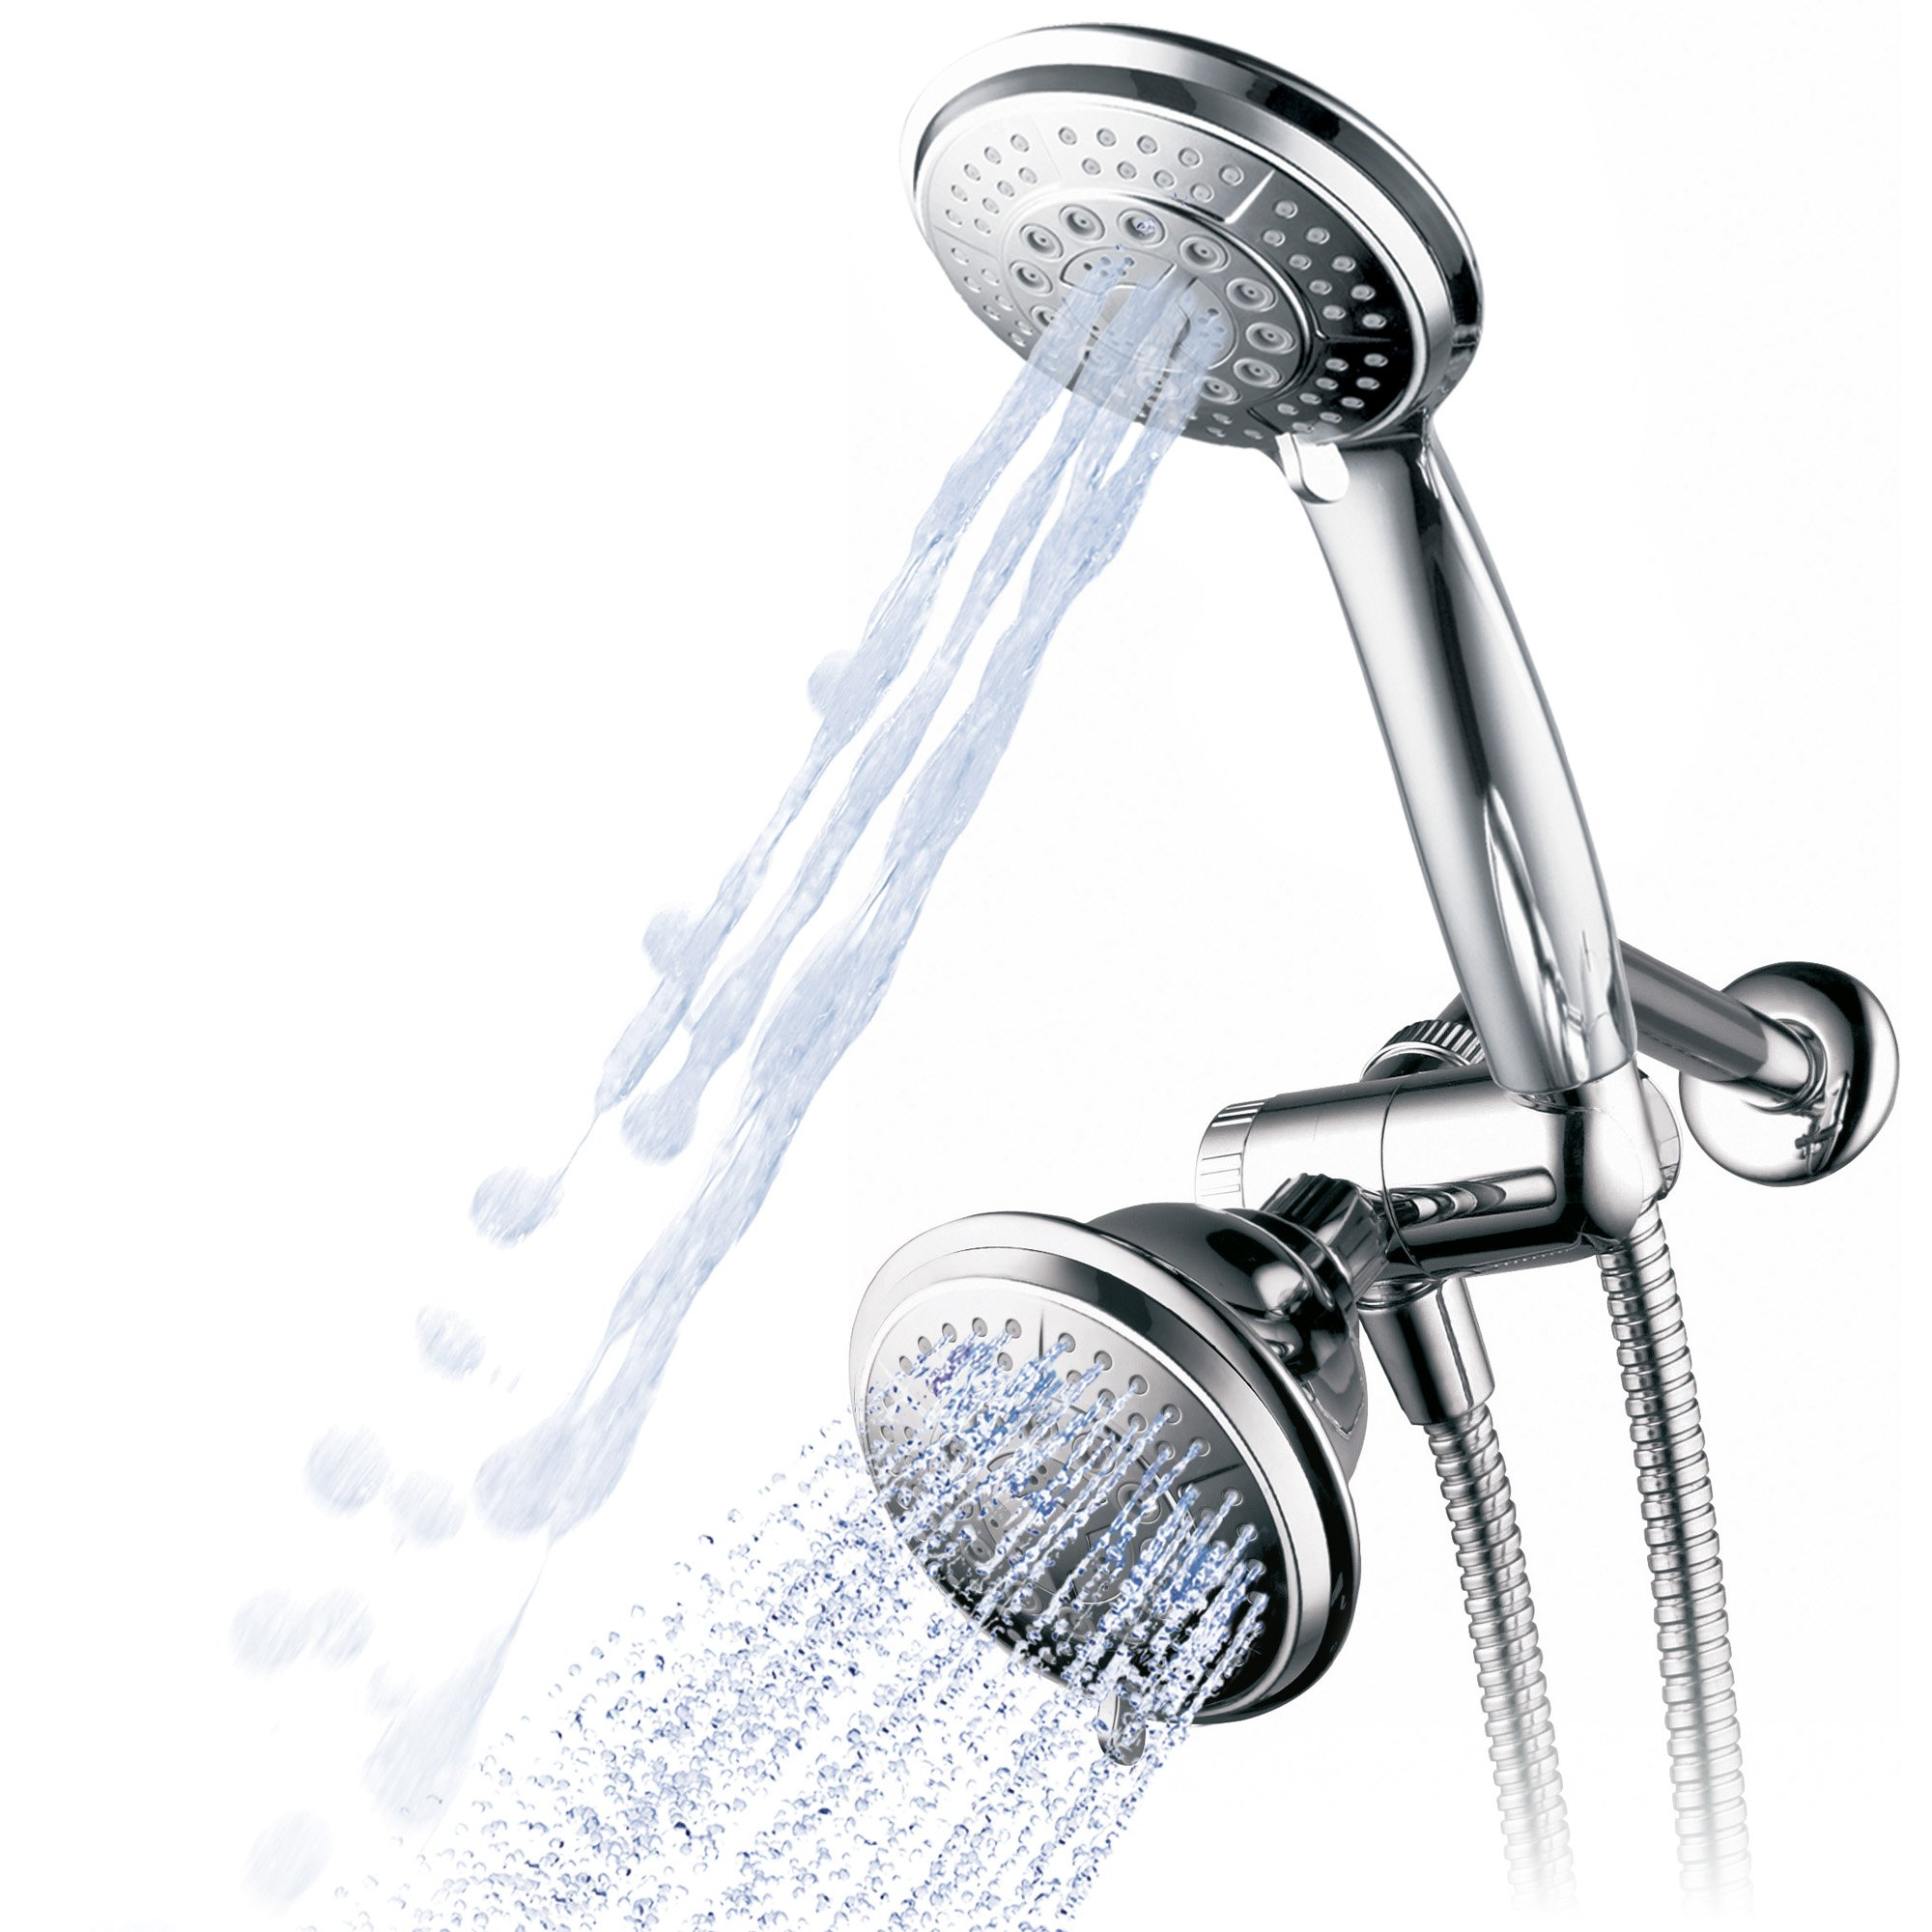 Hydroluxe Full-Chrome 24 Function Ultra-Luxury 3-way 2 in 1 Shower-Head/Handheld-Shower Combo